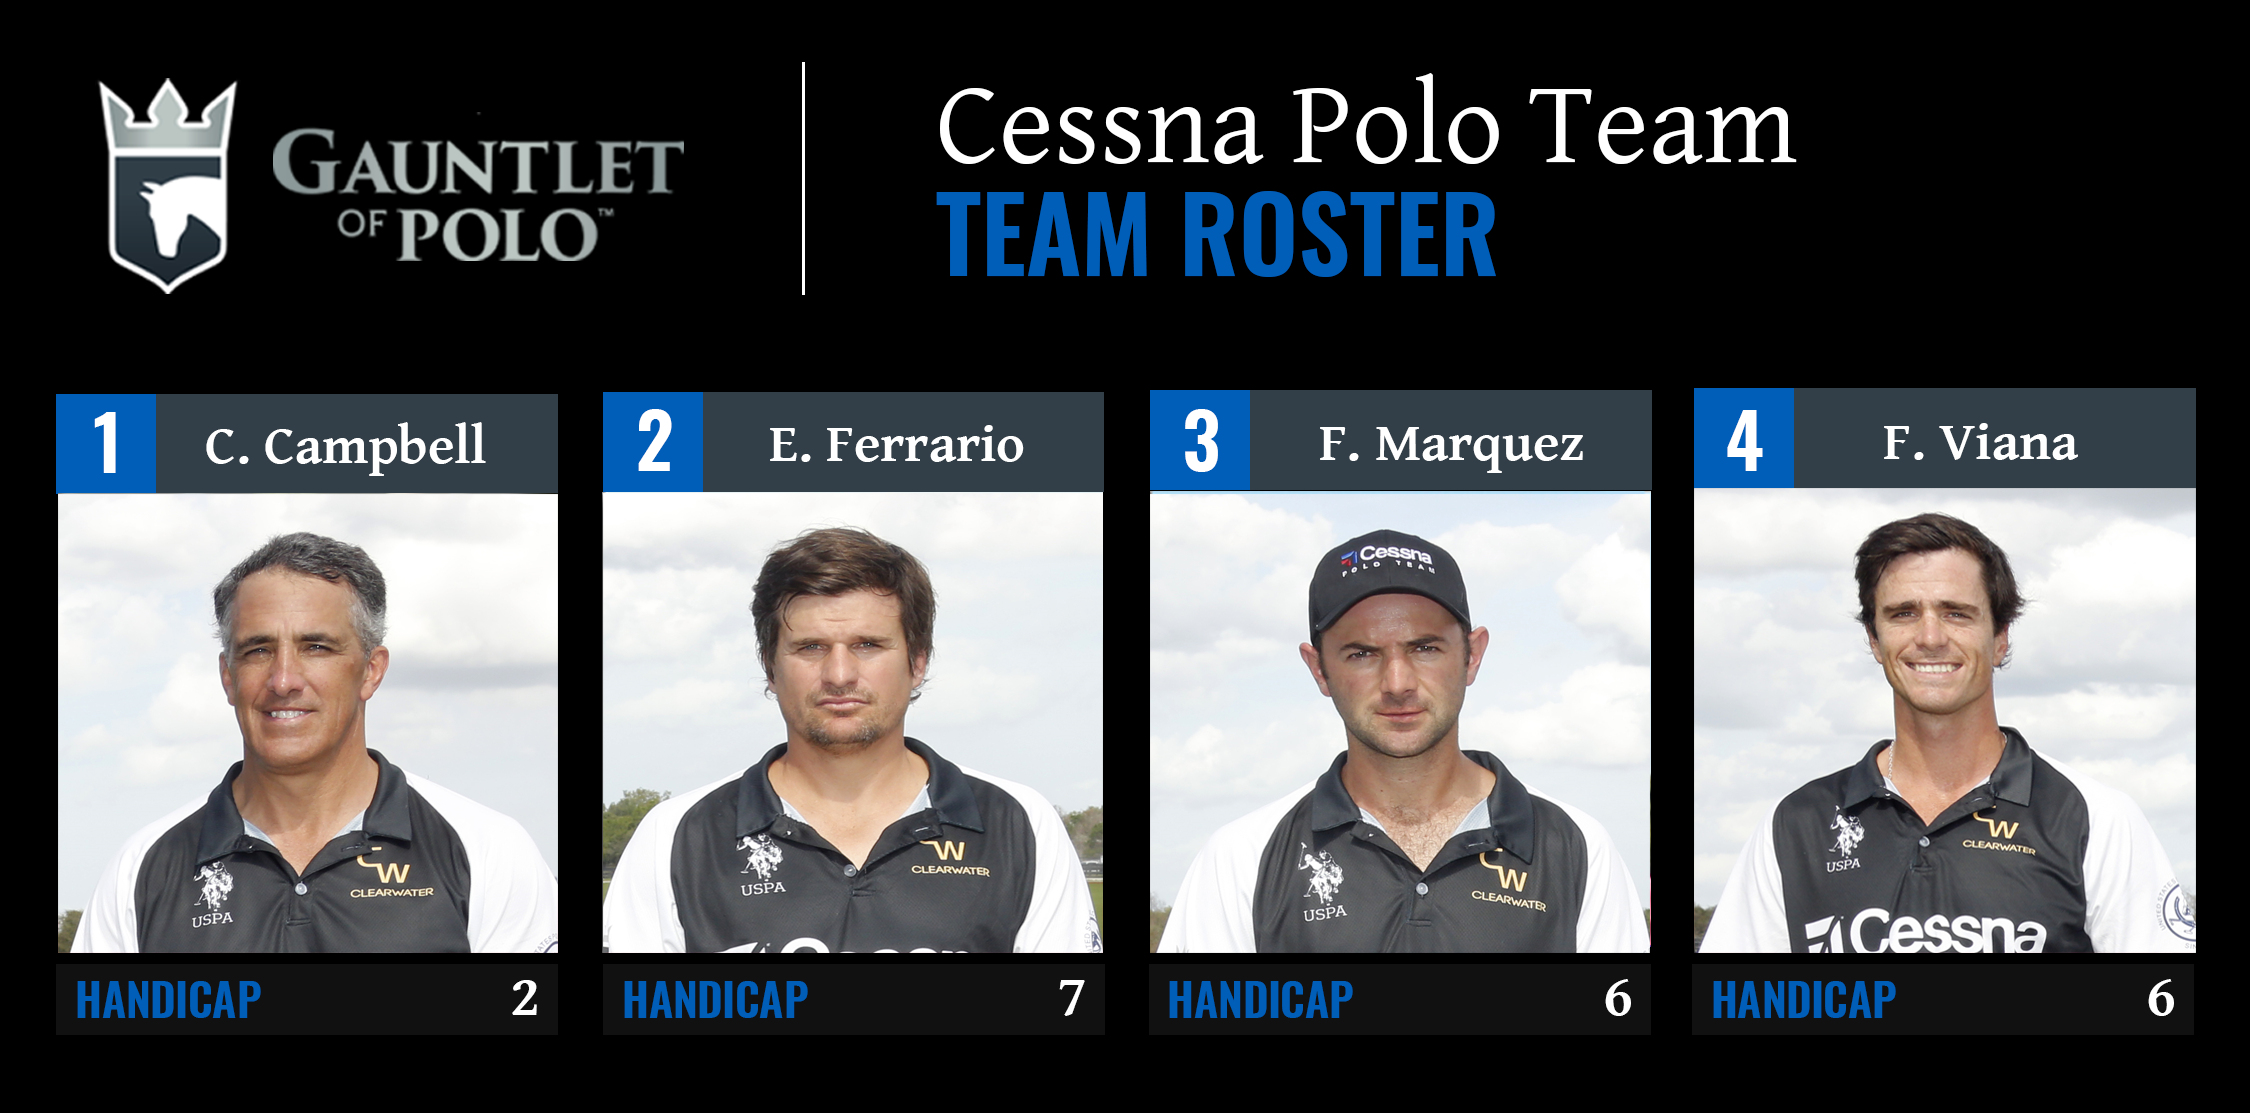 Cessna Polo Team